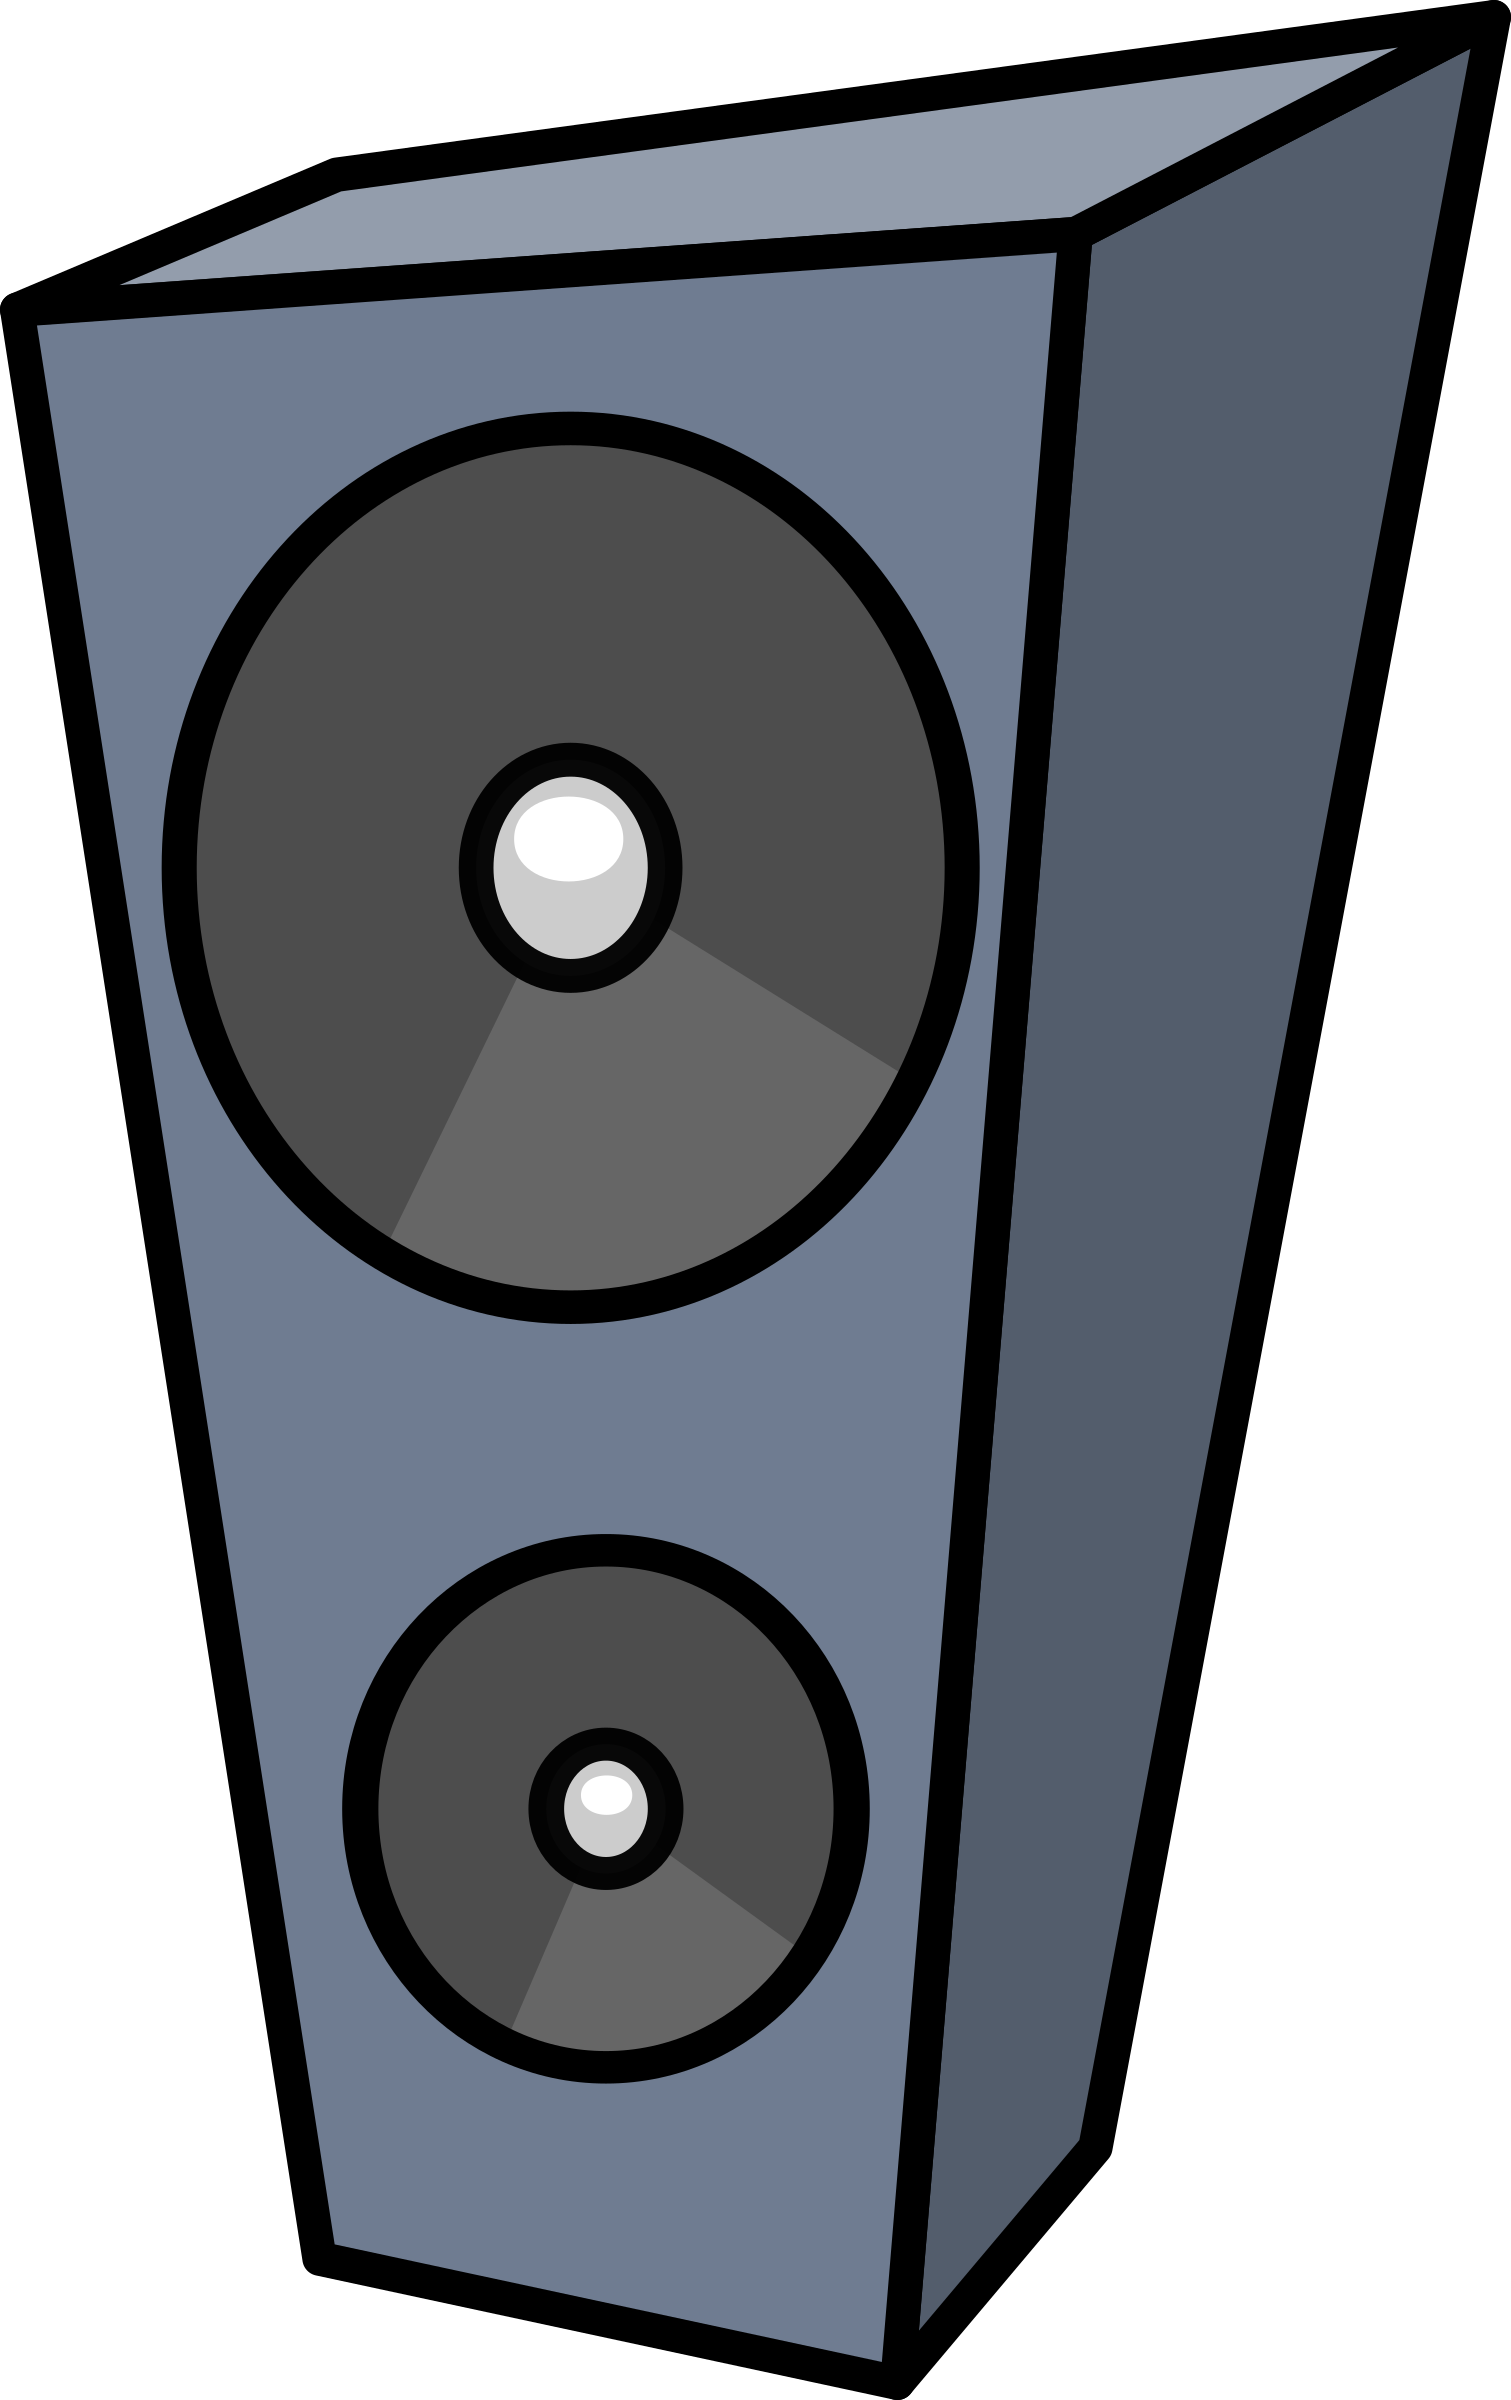 Cartoon speaker by lemmling